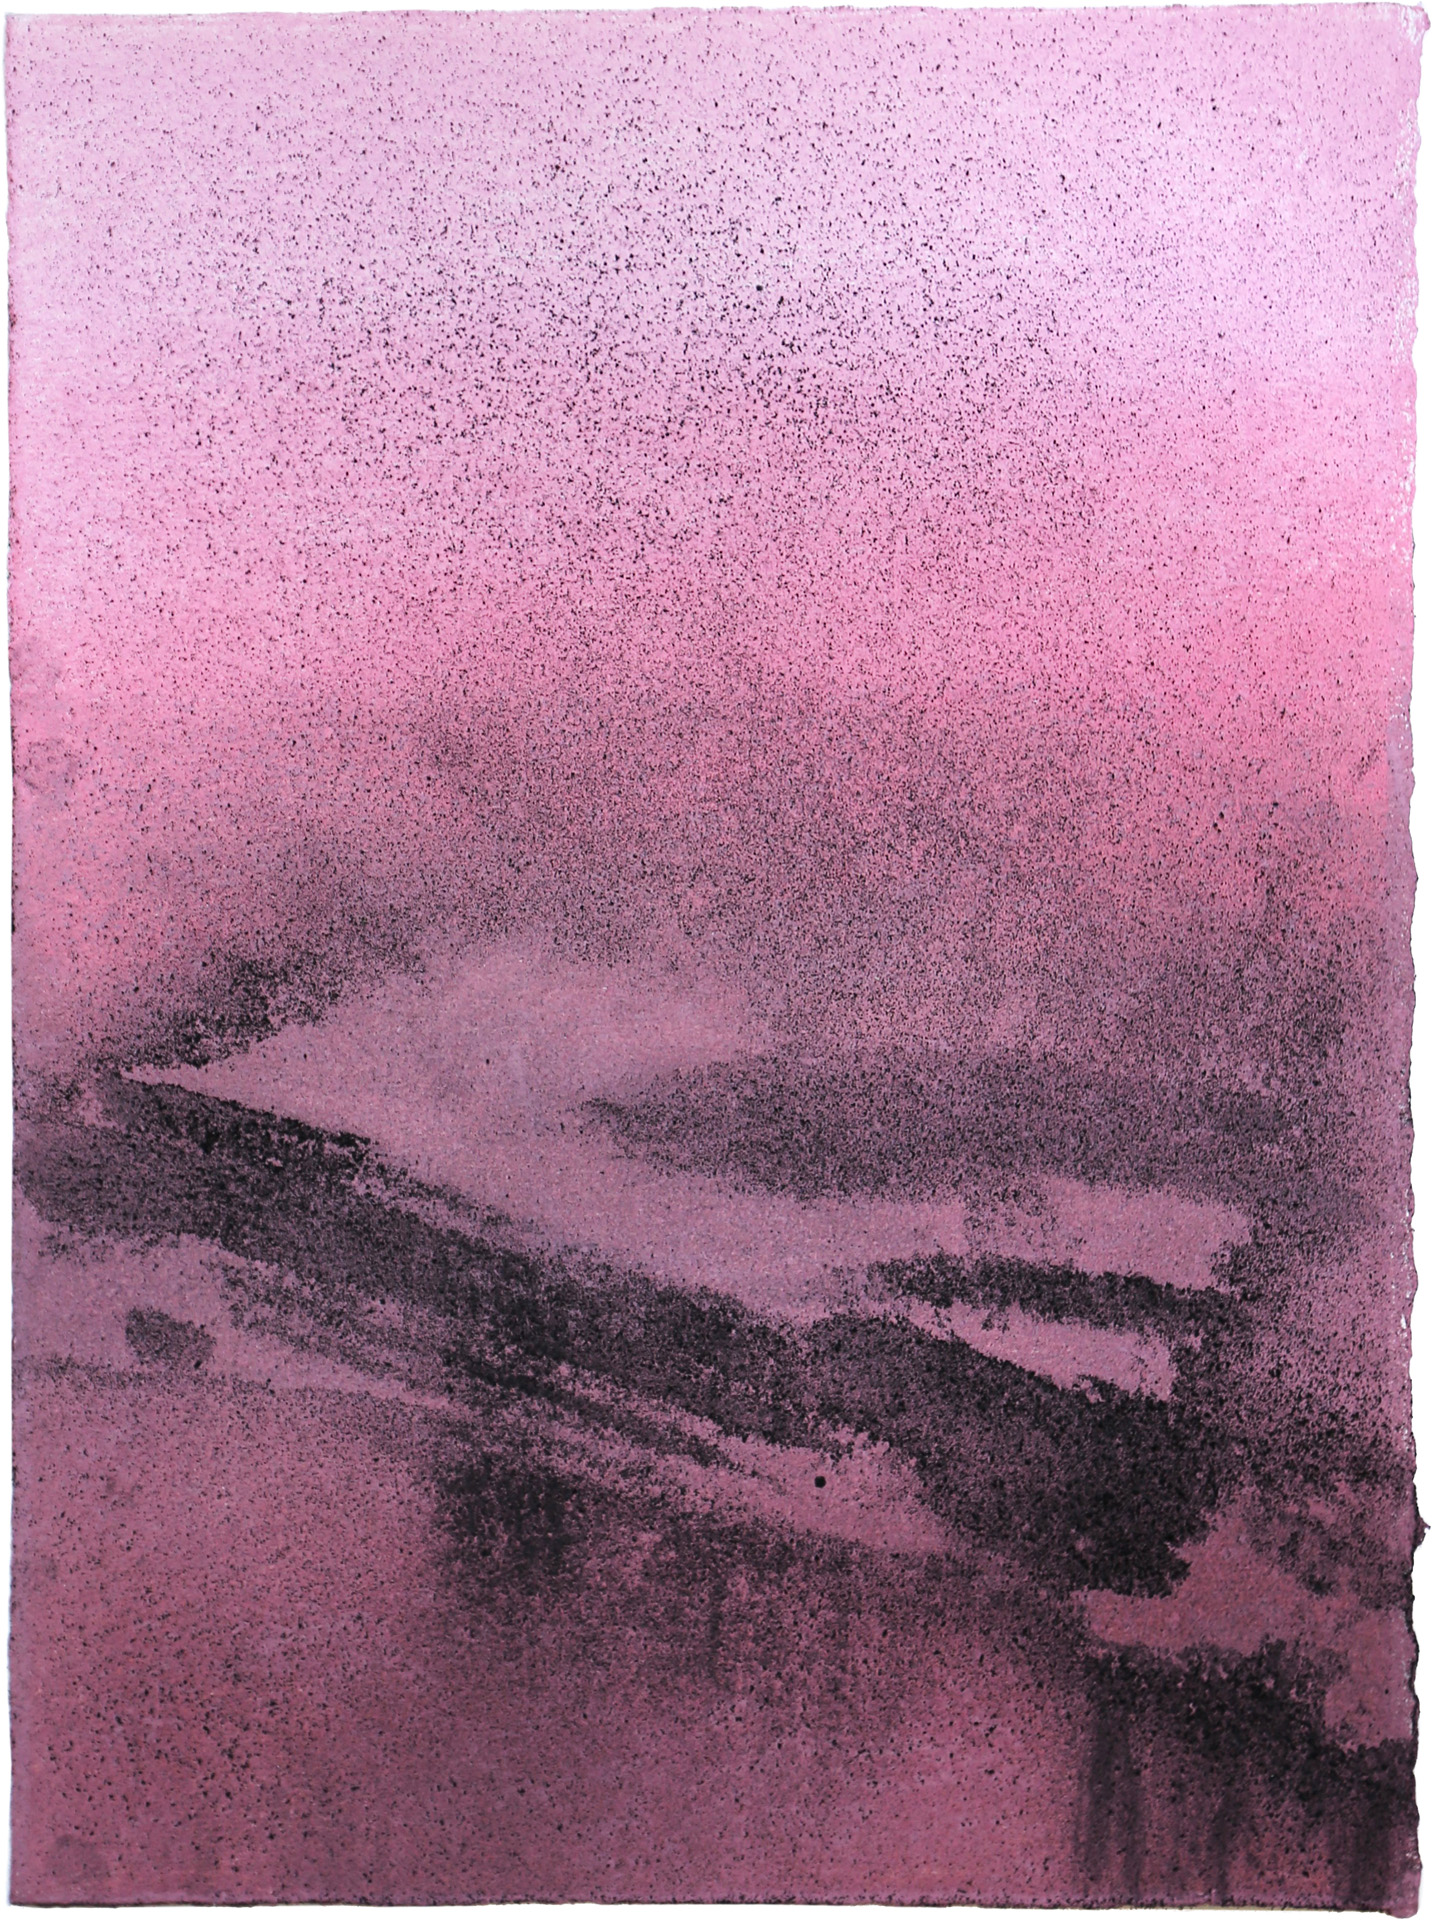 Nora Mona Bach – Gefilde I, 2020, pastel, charcoal on paper, 39 cm x 29 cm